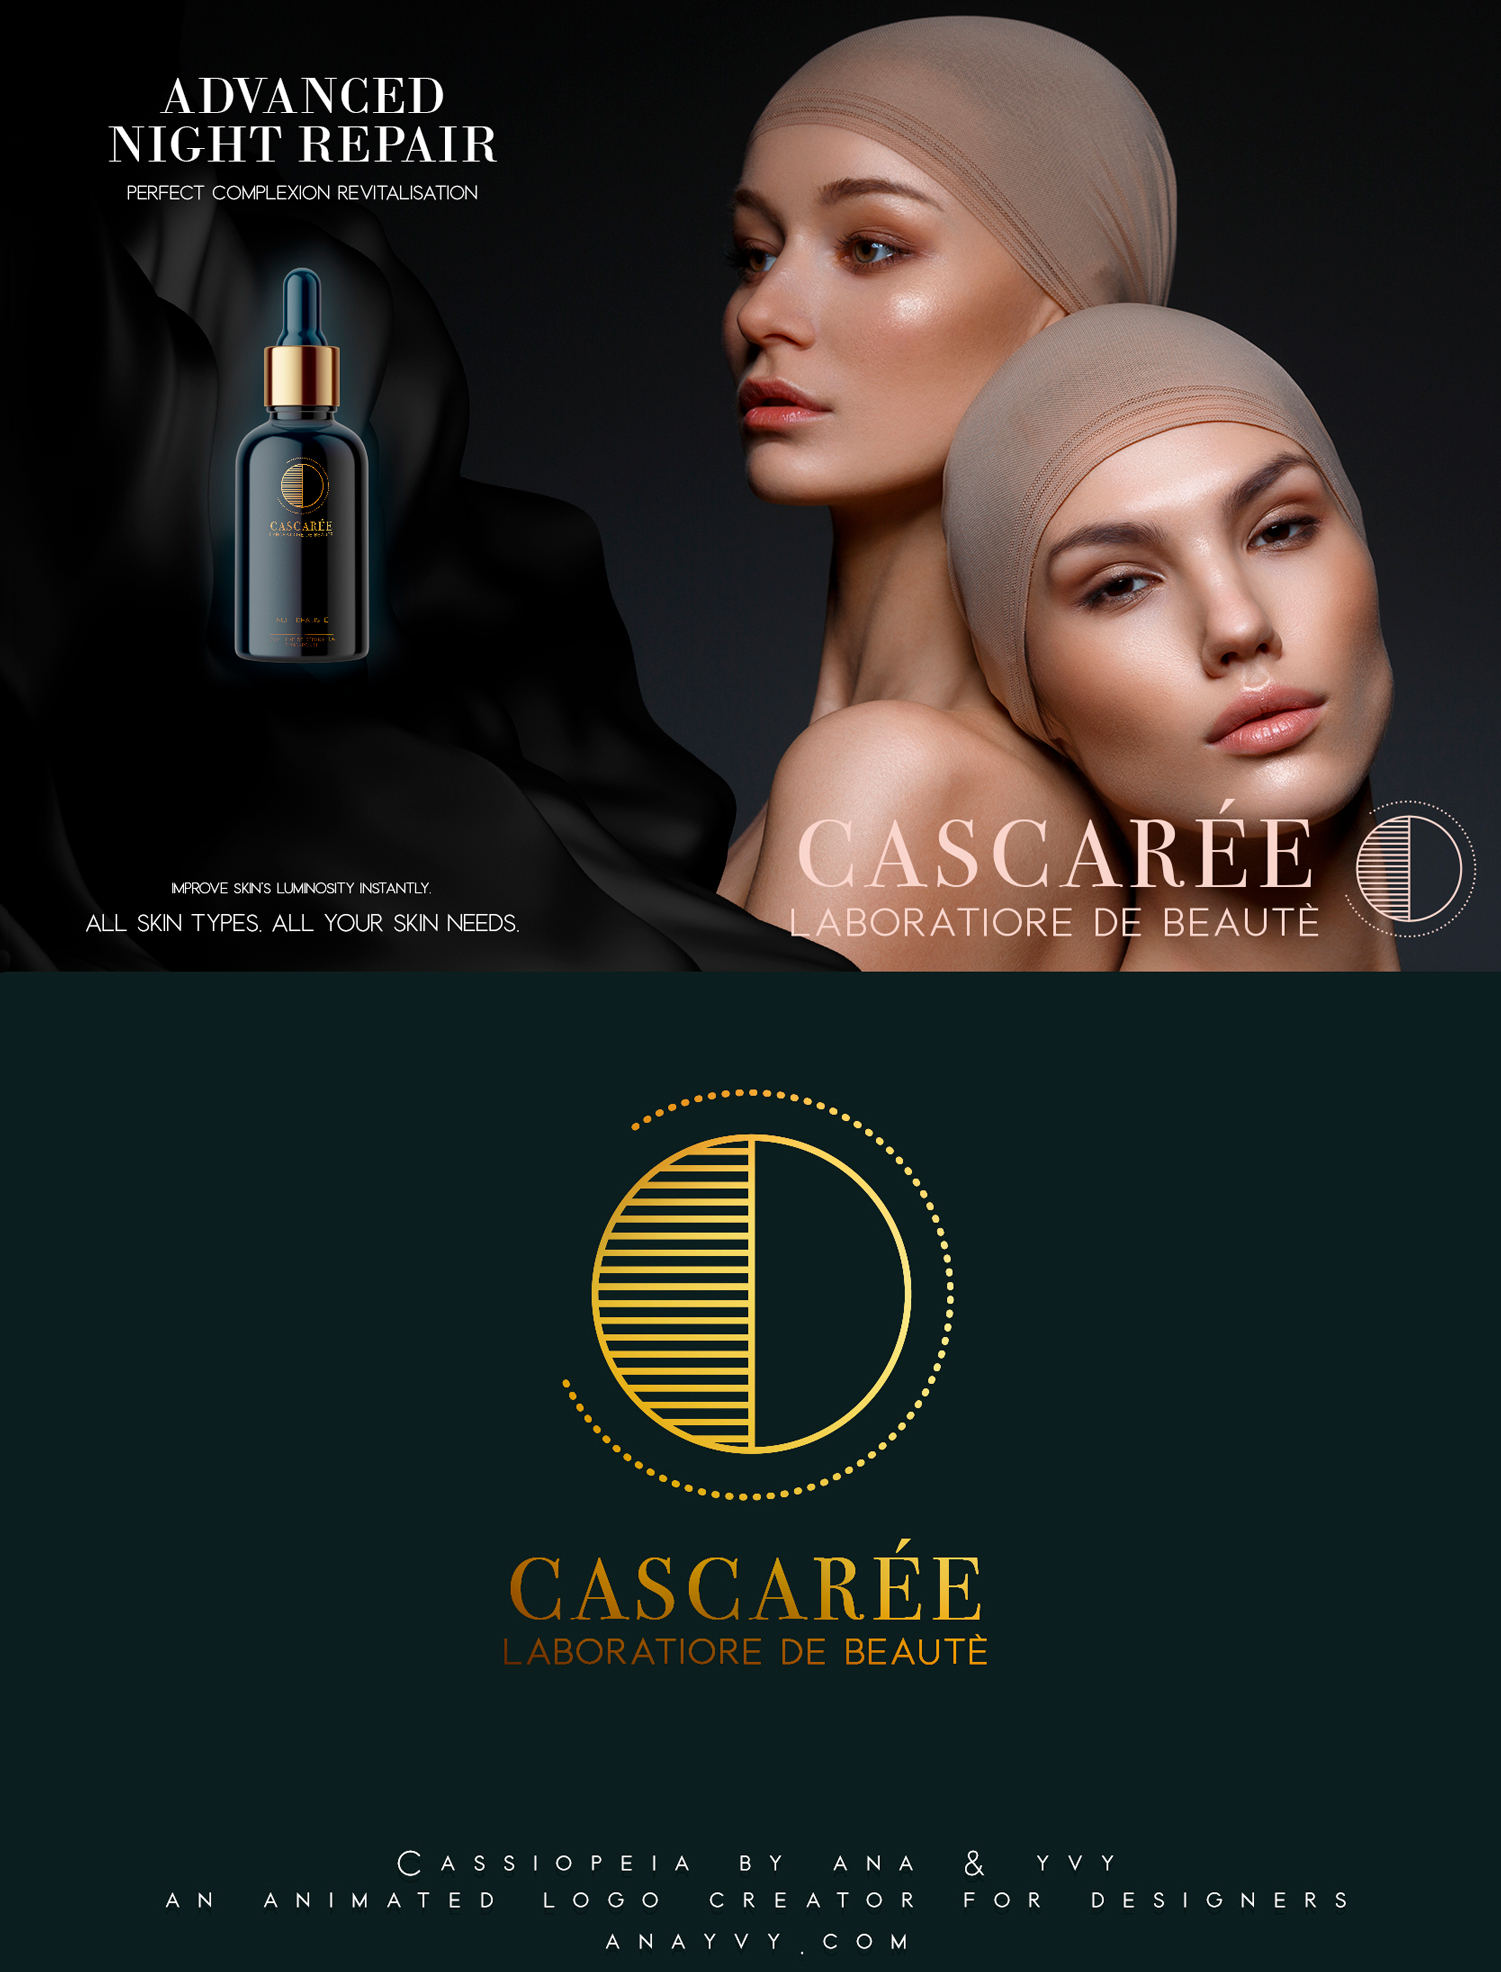 Cassiopeia-logo-design-animation-anayvy-motion-vintage-hand-greenery-apothecary-Serum-2